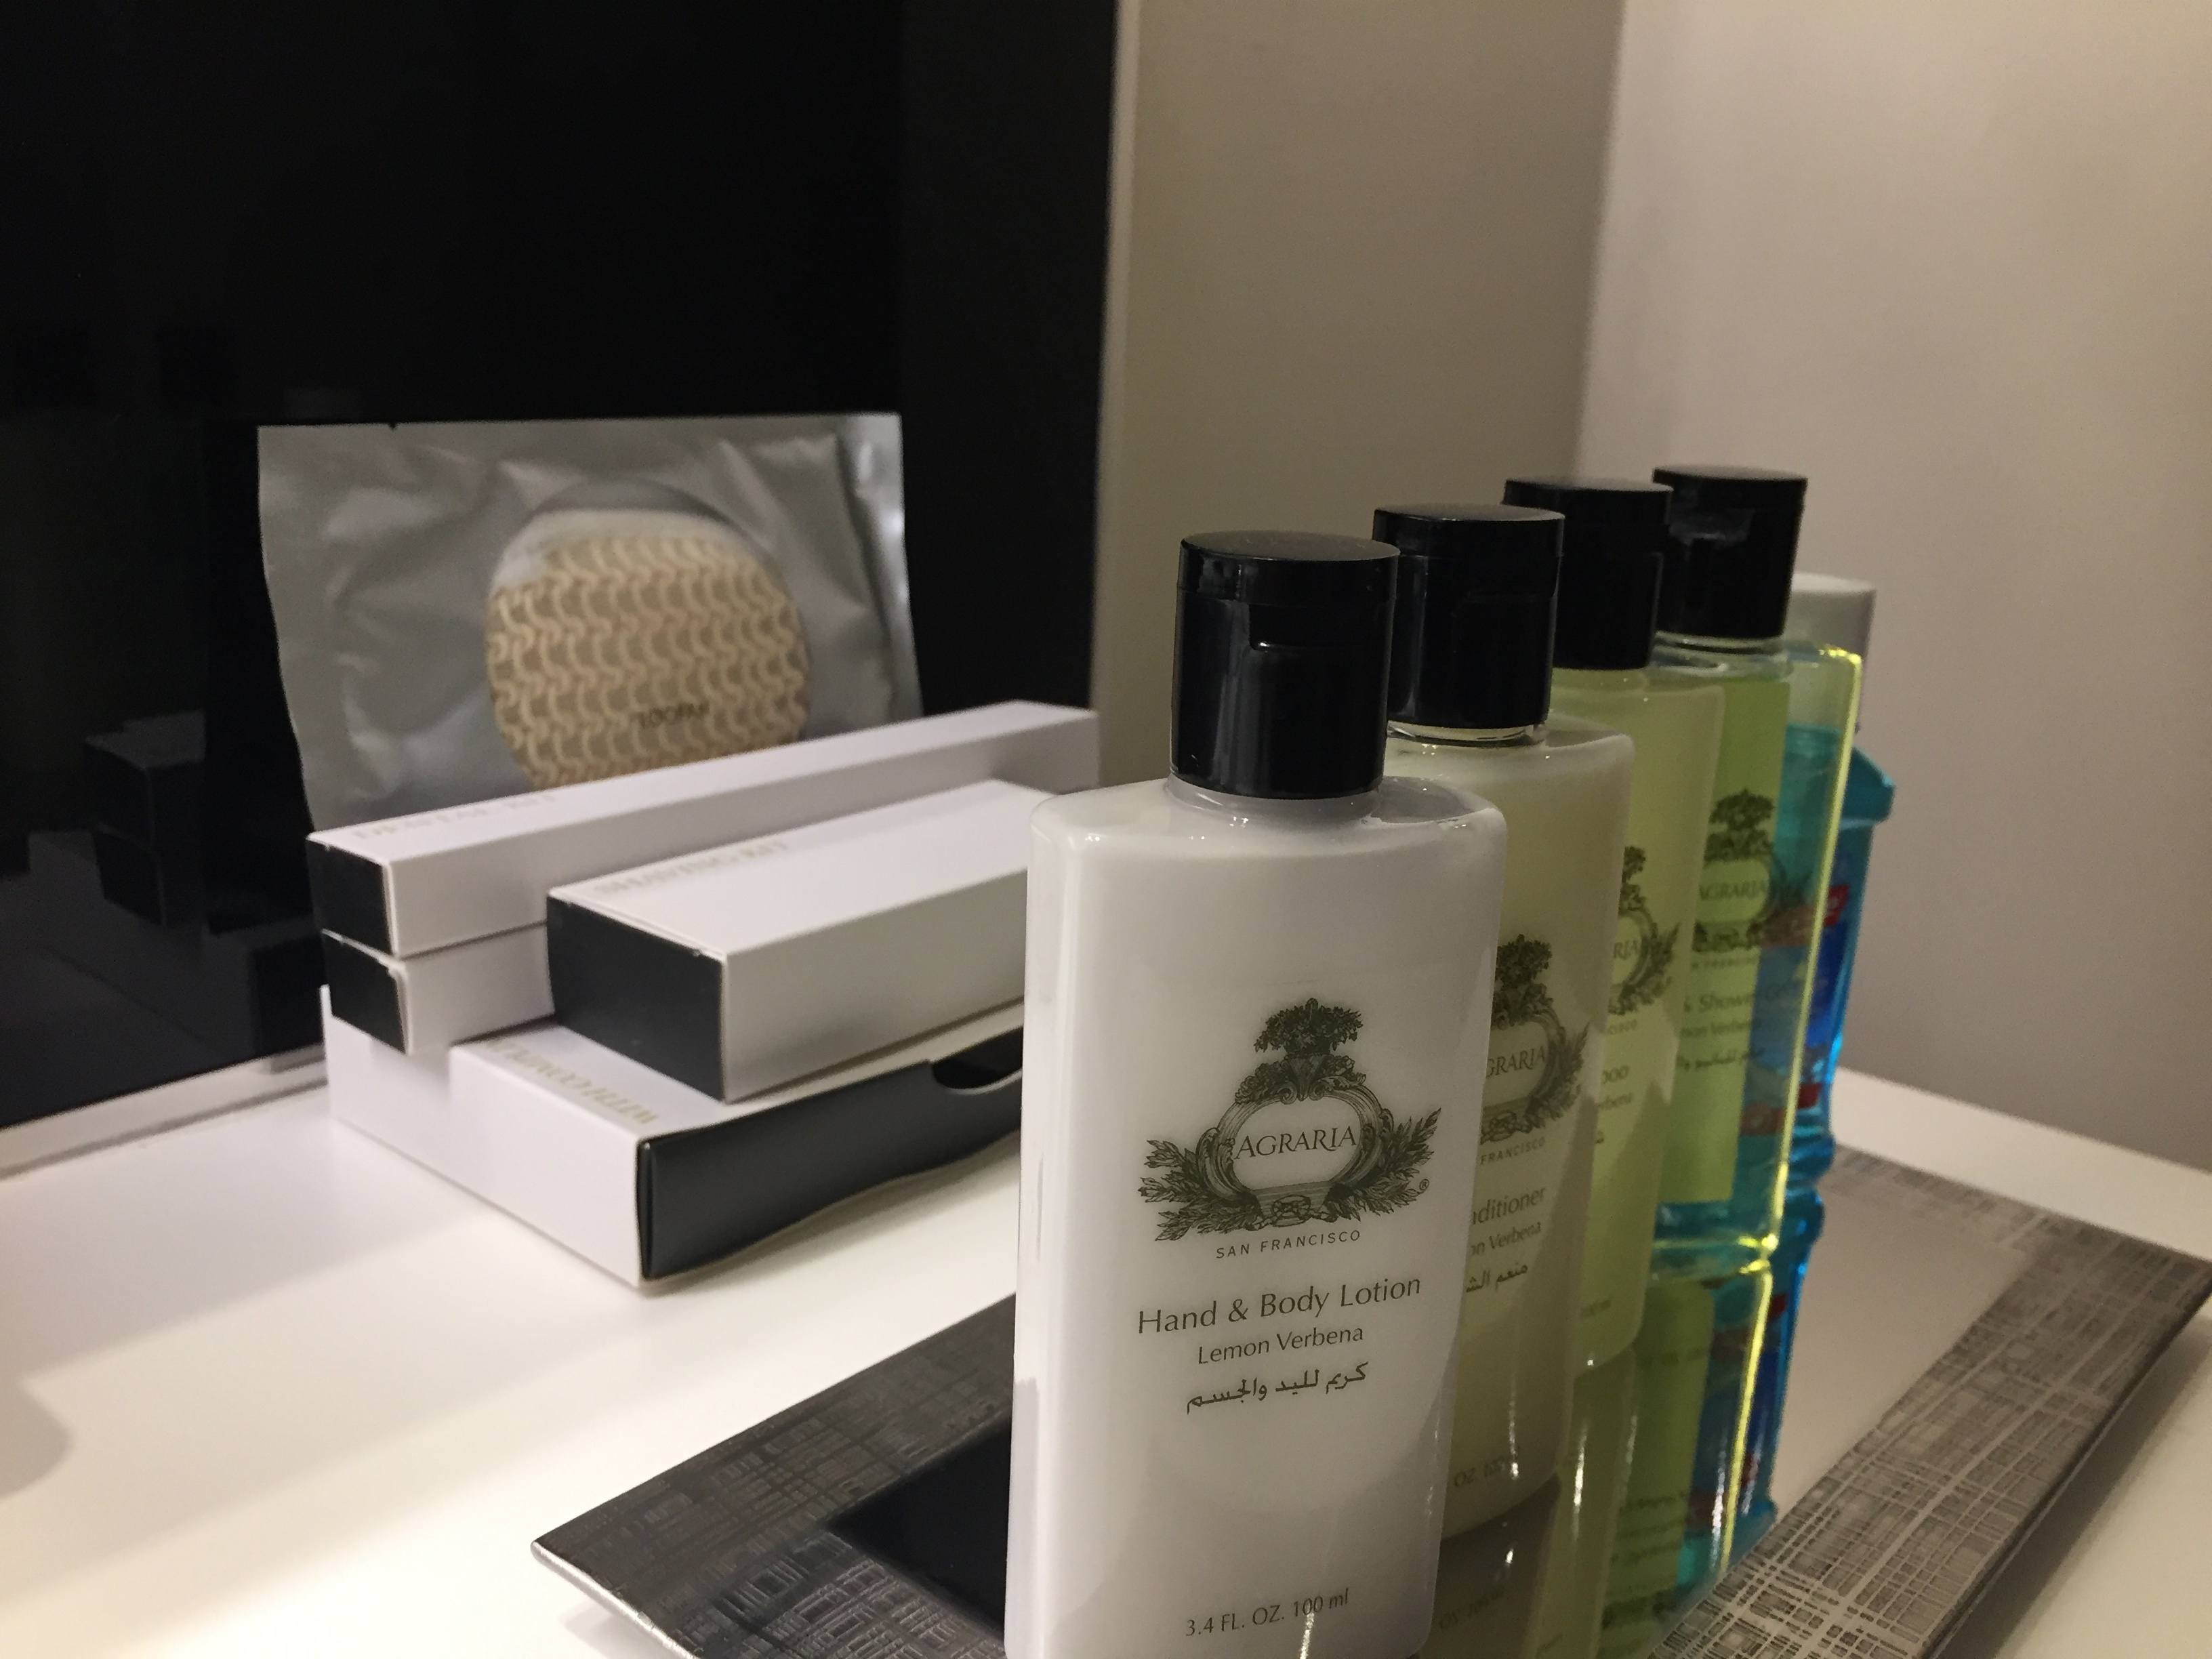 Agraria San Francisco bath and body gels and InterContinental Doha The City amenity kits